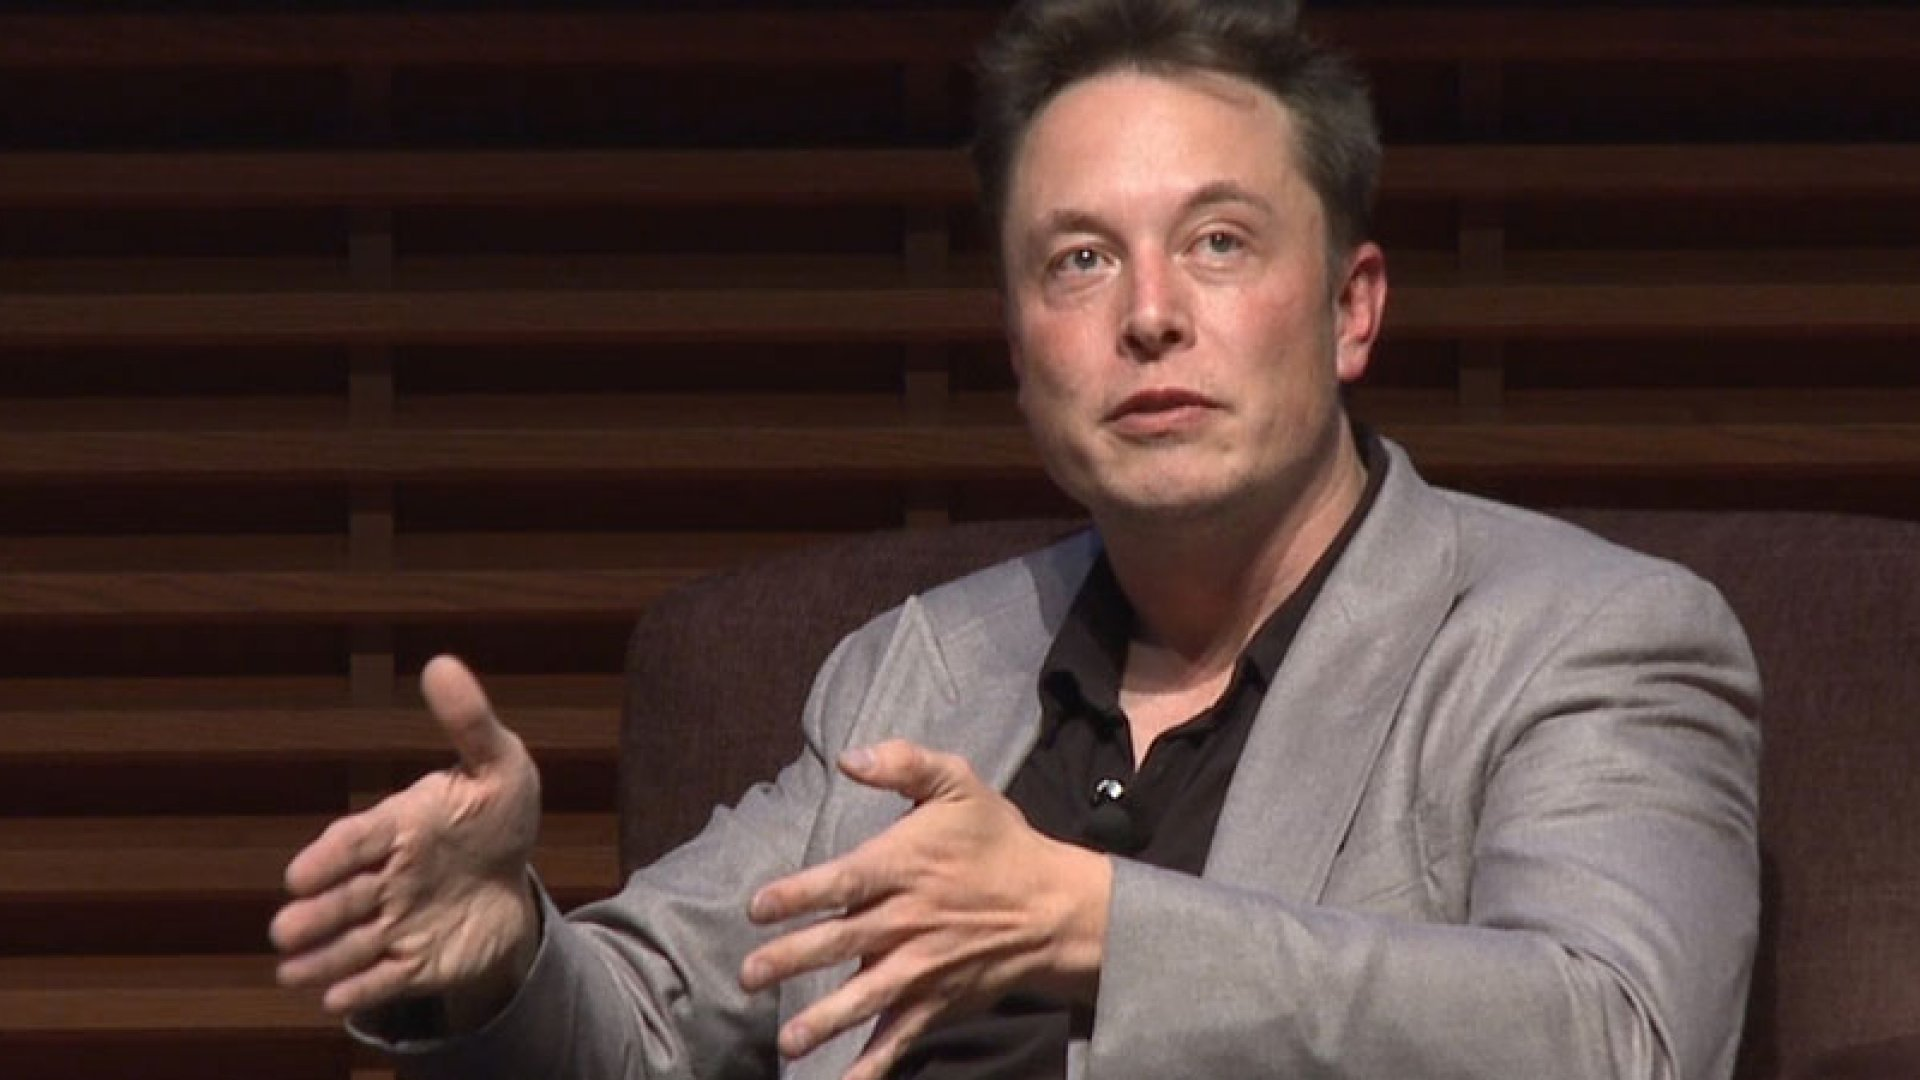 Elon Musk Has Strong Words for Donald Trump